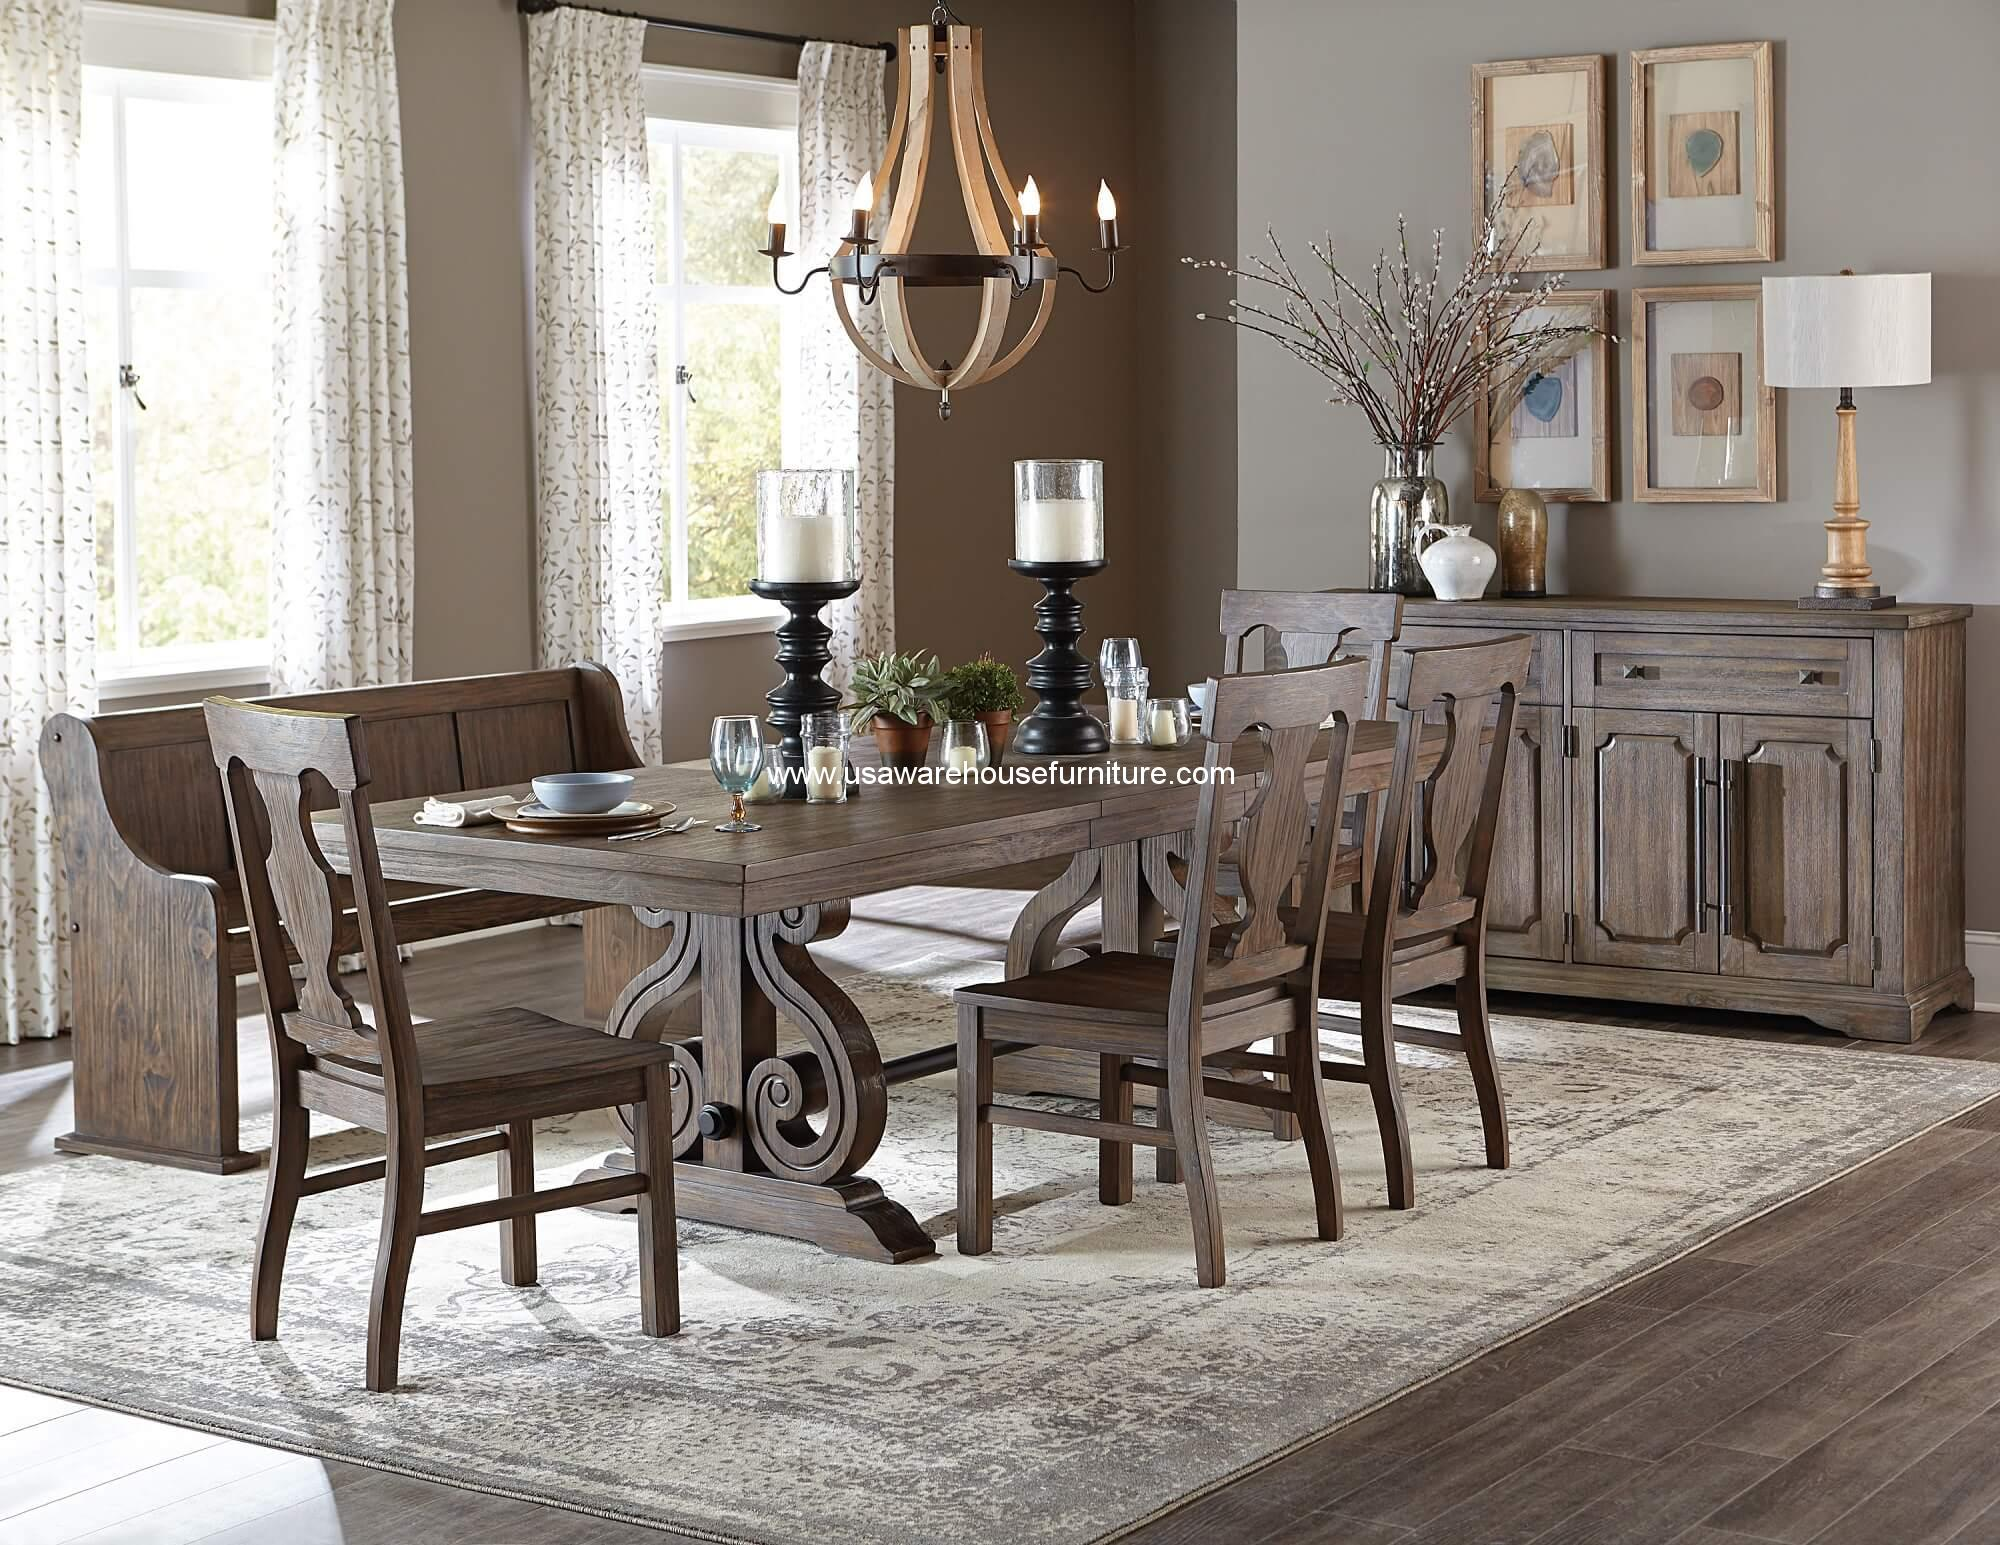 6 piece toulon dining set rustic finish usa warehouse for Rustic dining set